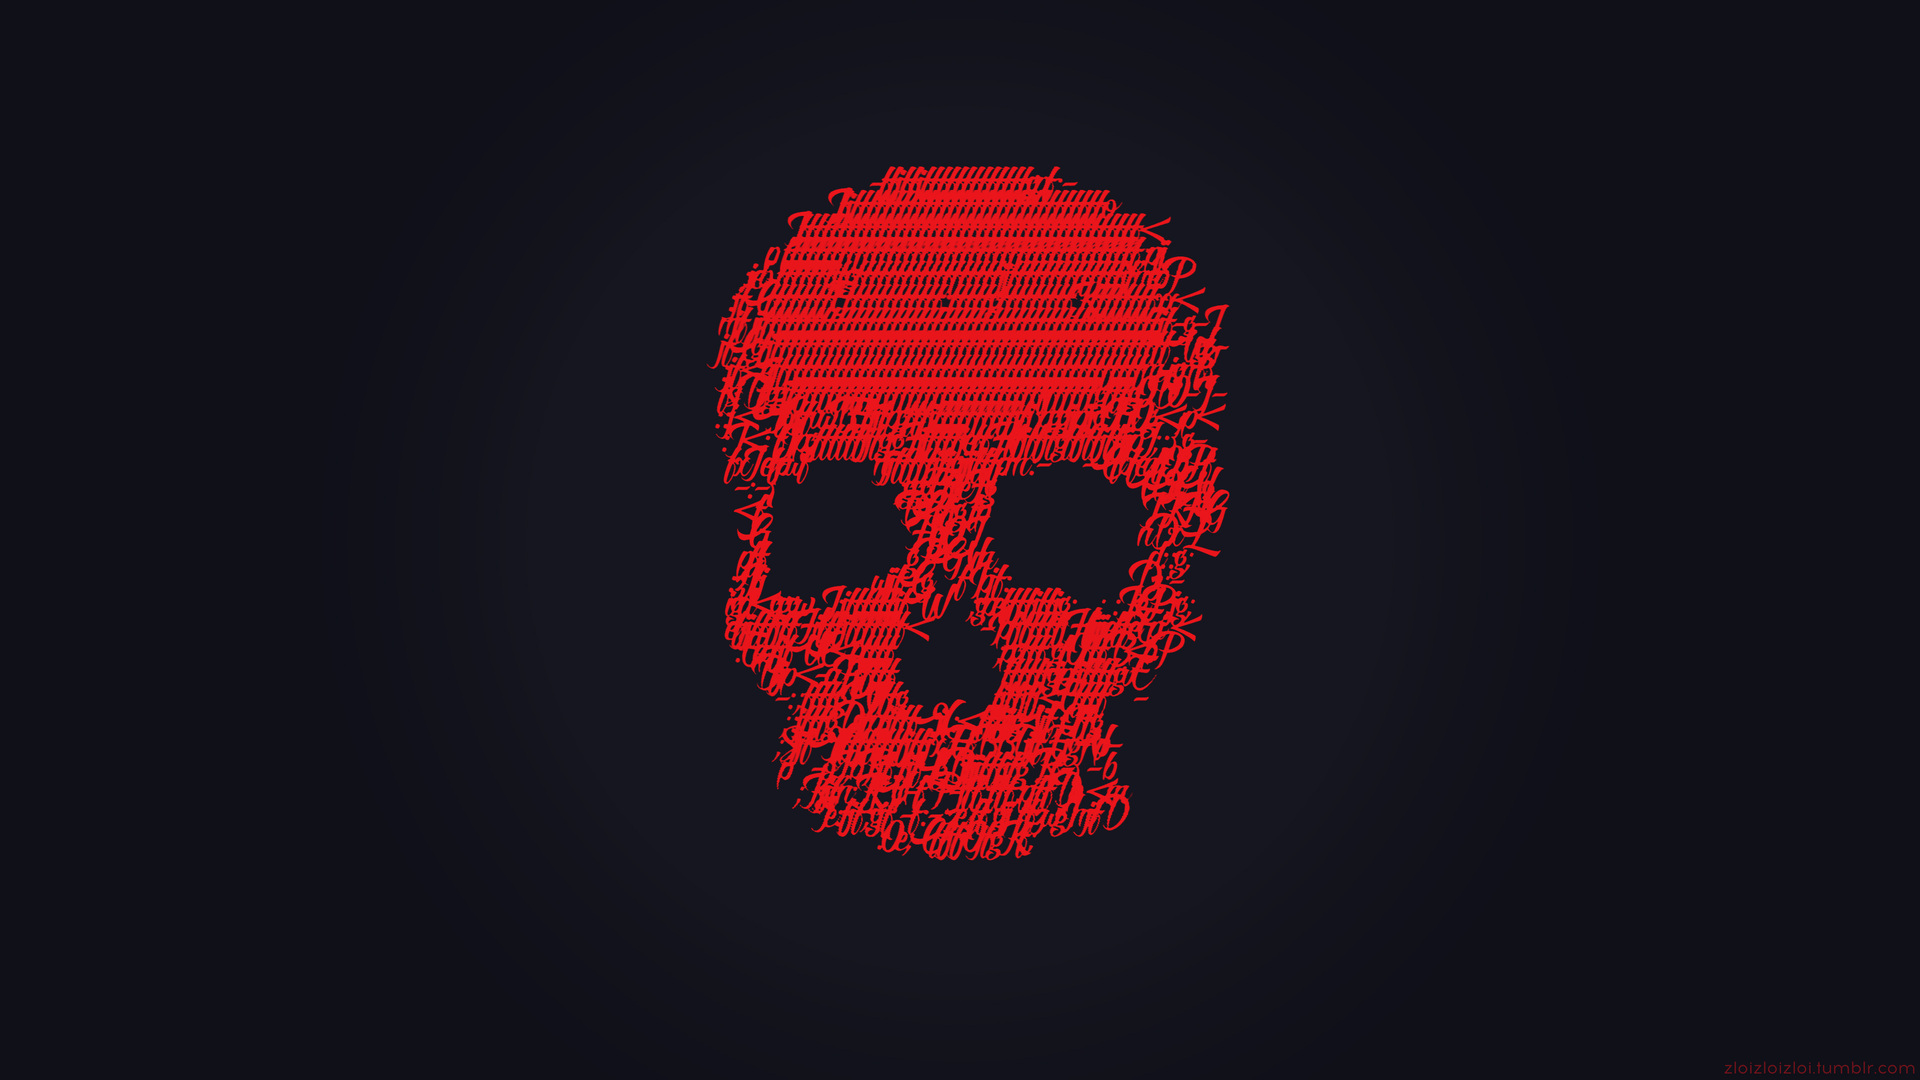 3d Wallpapers Hd Full Hd 1080p 1920x1080 1920x1080 Red Skull 4k Laptop Full Hd 1080p Hd 4k